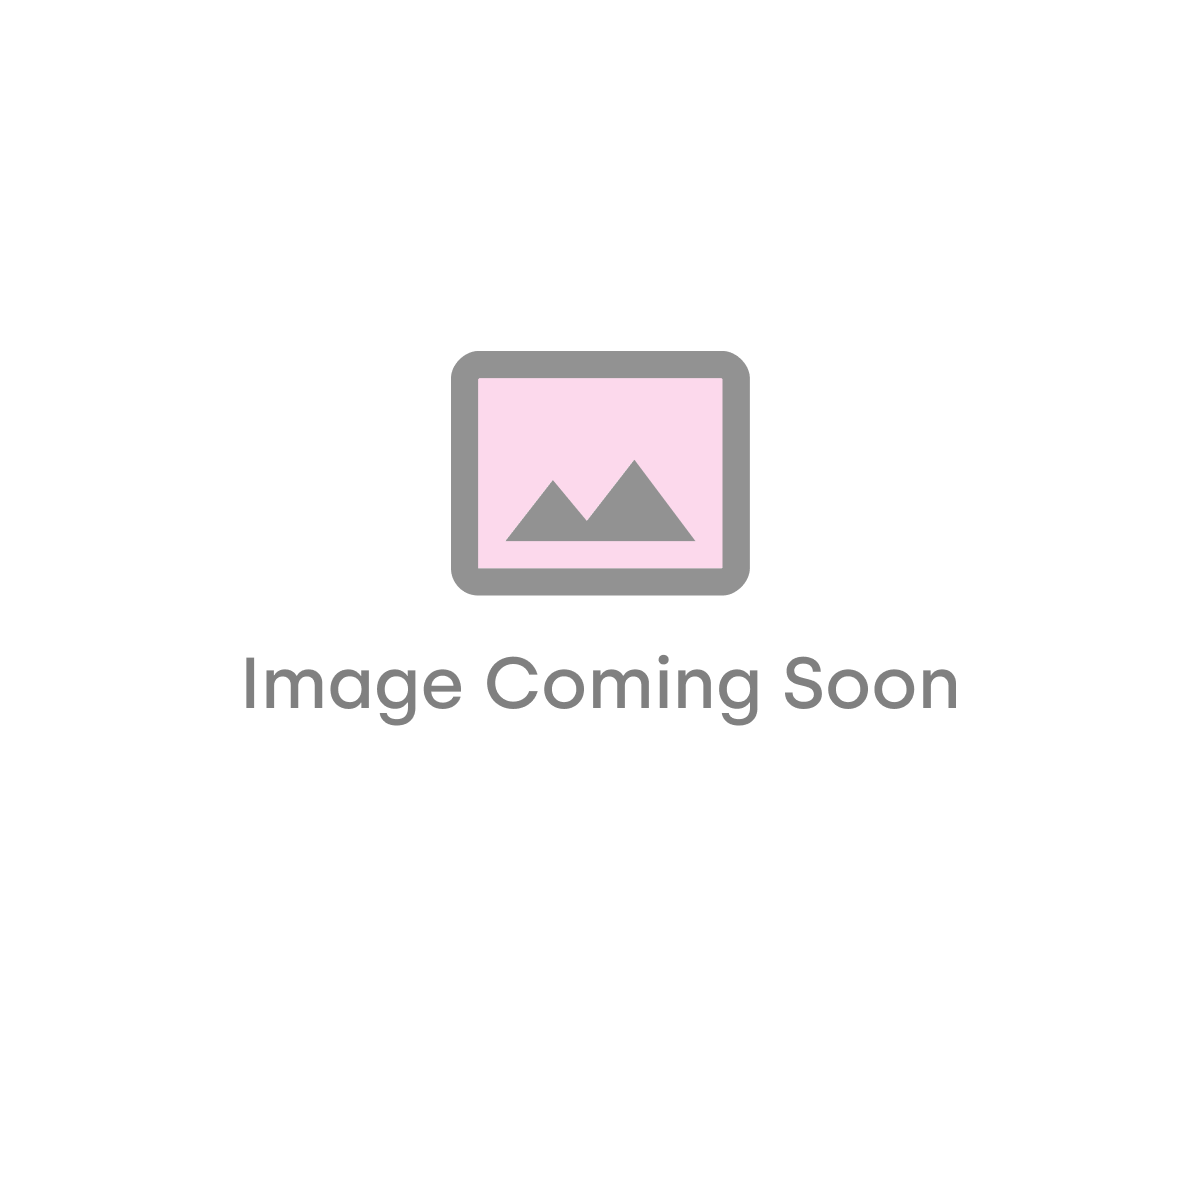 Minuto 400mm Floorstanding Cloakroom Vanity Unit & Basin - Gloss White (19255)